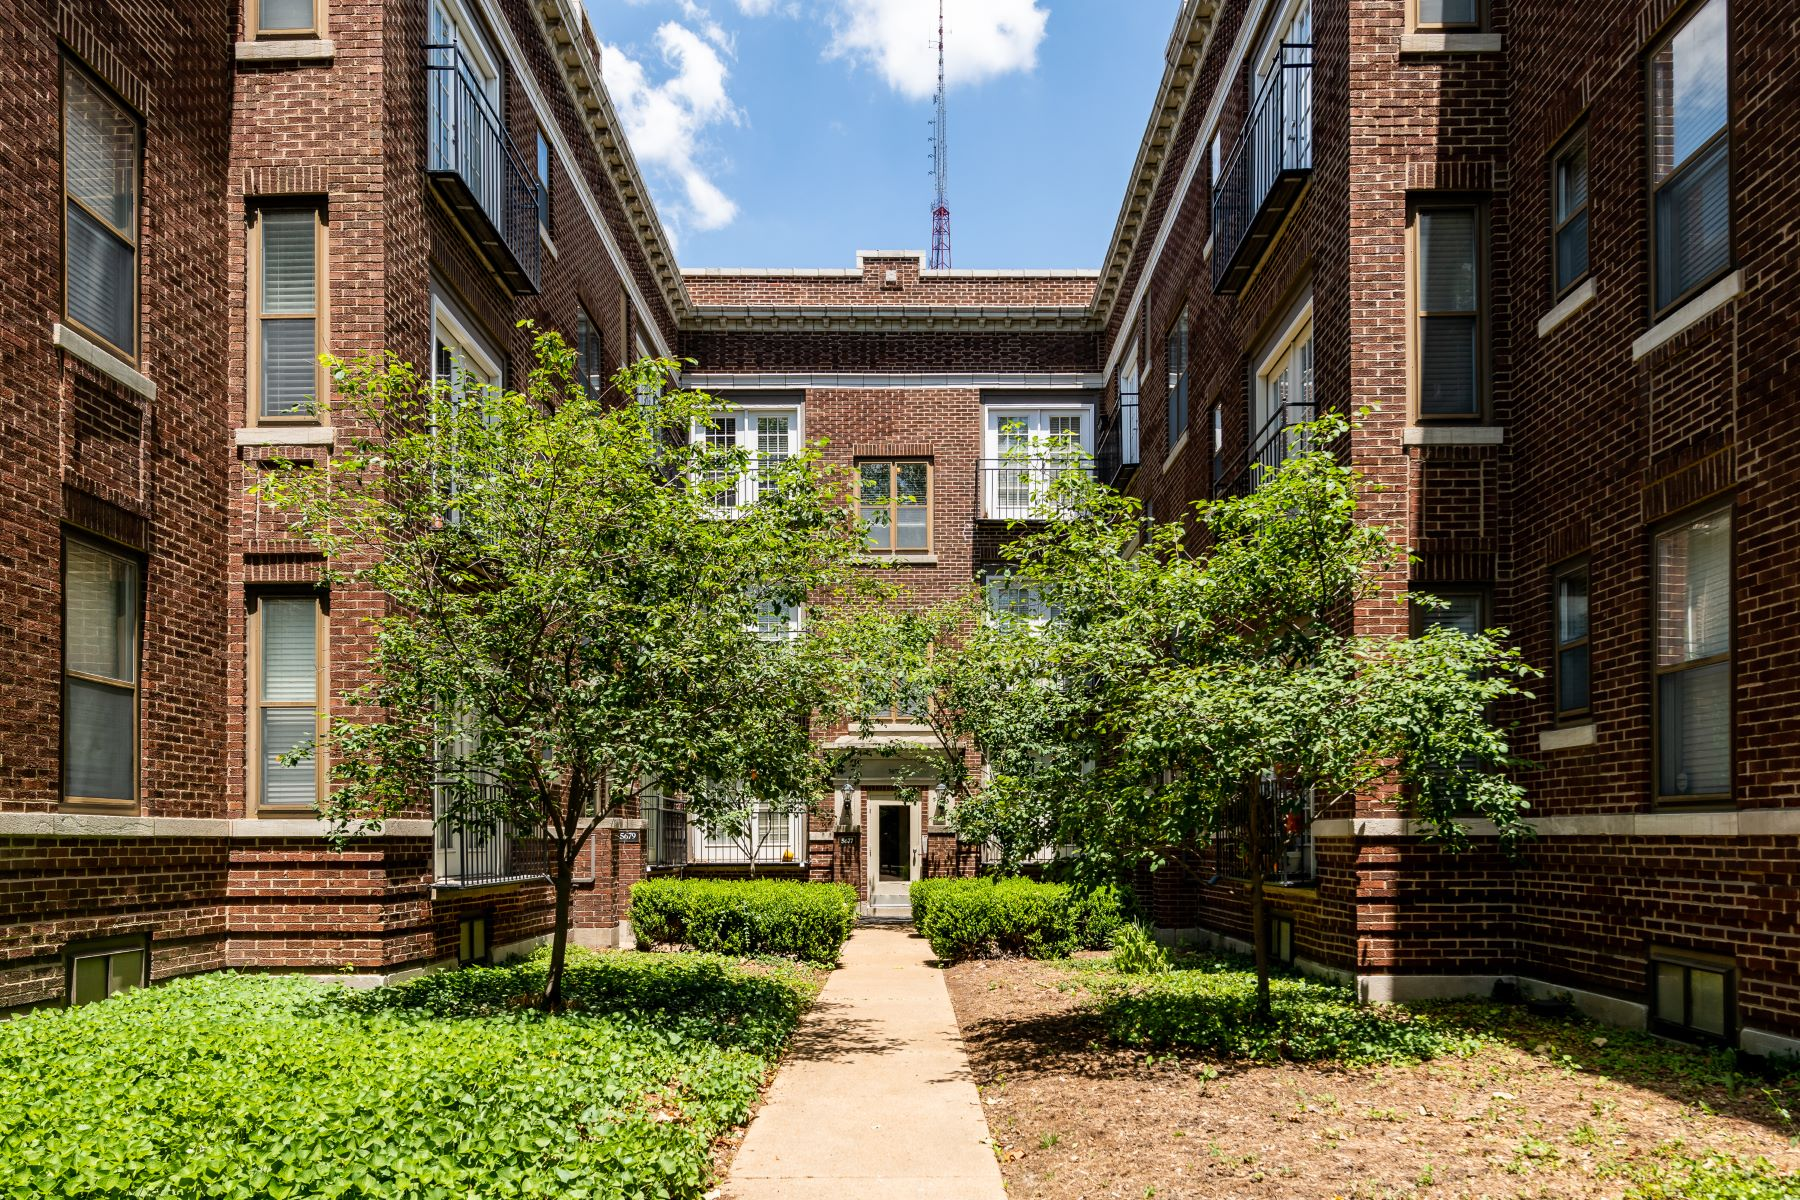 Condominiums for Sale at Debaliviere Condominium 5679 Waterman Boulevard, #21 St. Louis, Missouri 63112 United States